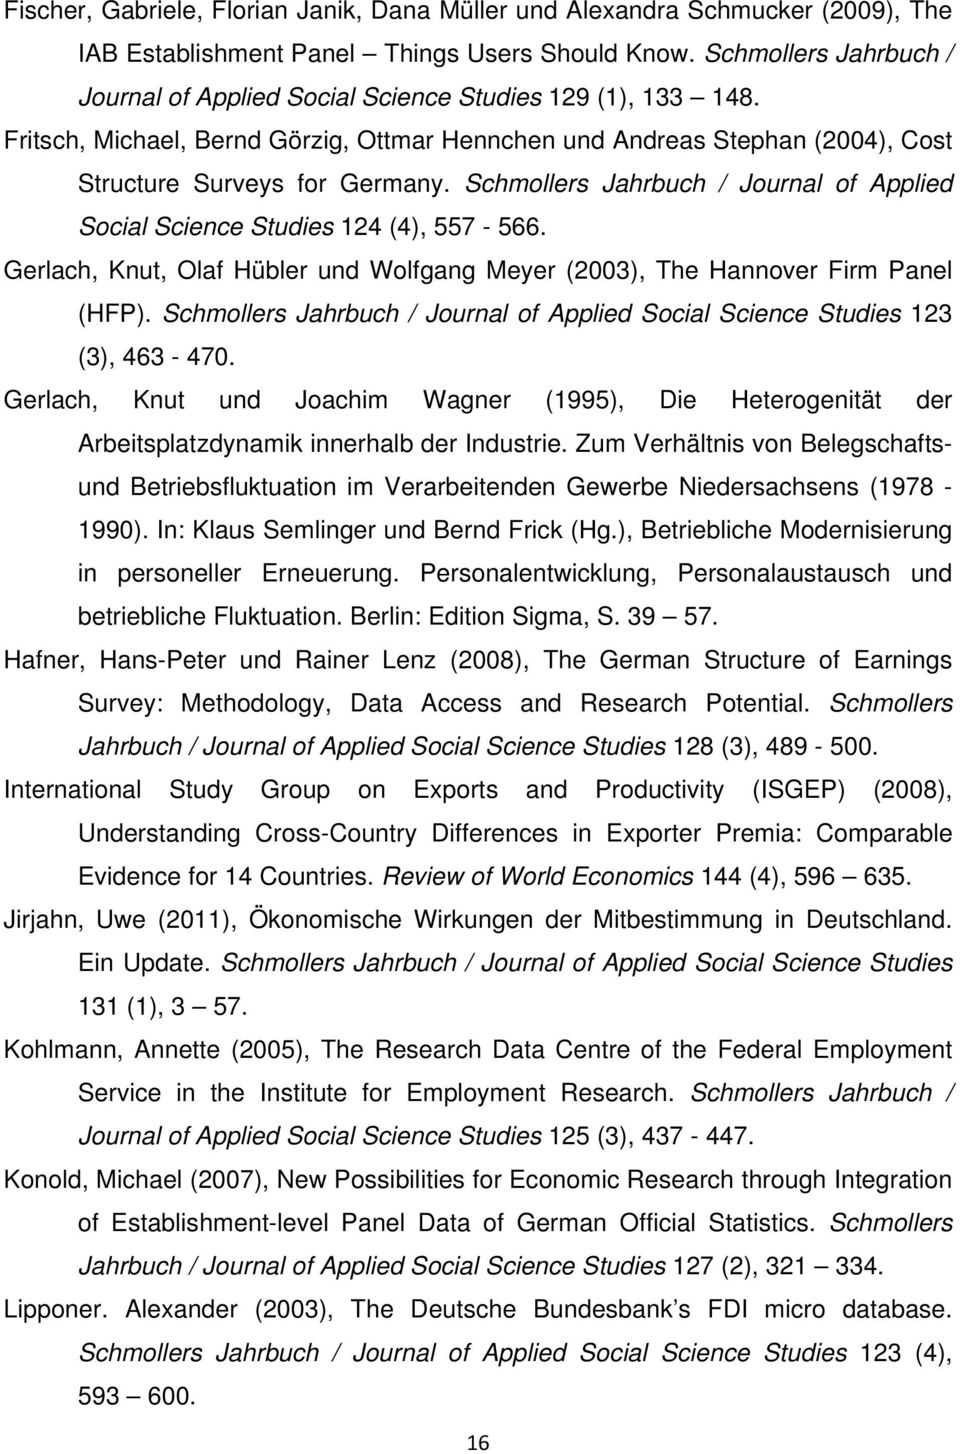 Schmollers Jahrbuch / Journal of Applied Social Science Studies 124 (4), 557-566. Gerlach, Knut, Olaf Hübler und Wolfgang Meyer (2003), The Hannover Firm Panel (HFP).